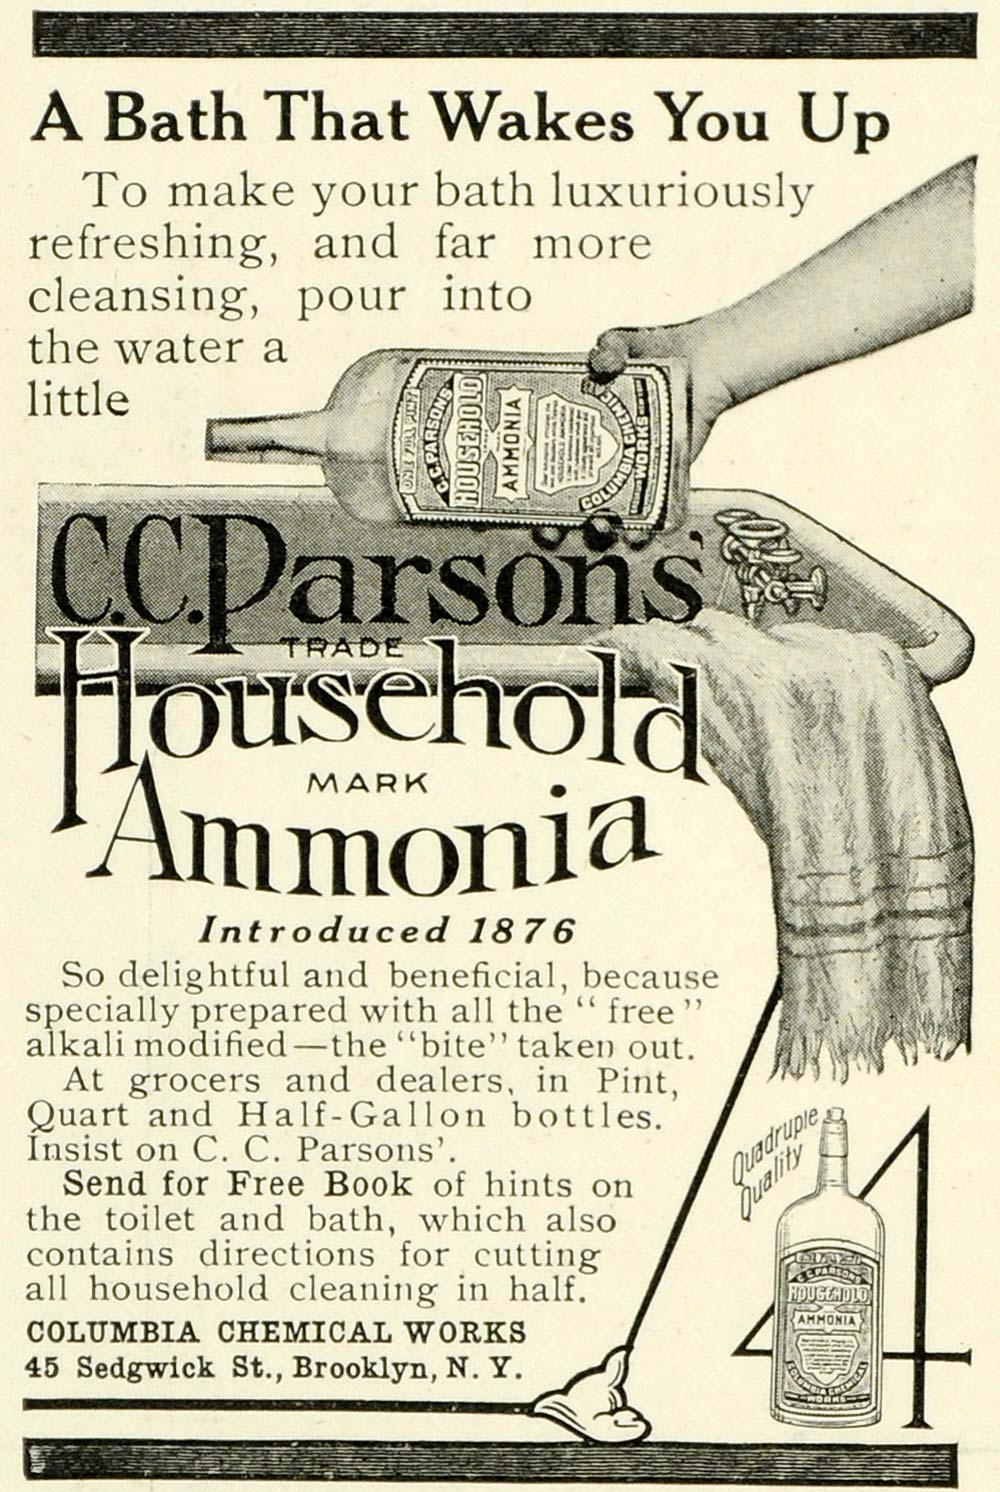 1909 Ad Columbia Chemicals C  C  Paron's Ammonia Cleaner Rag Cleanser Bath  LHJ6